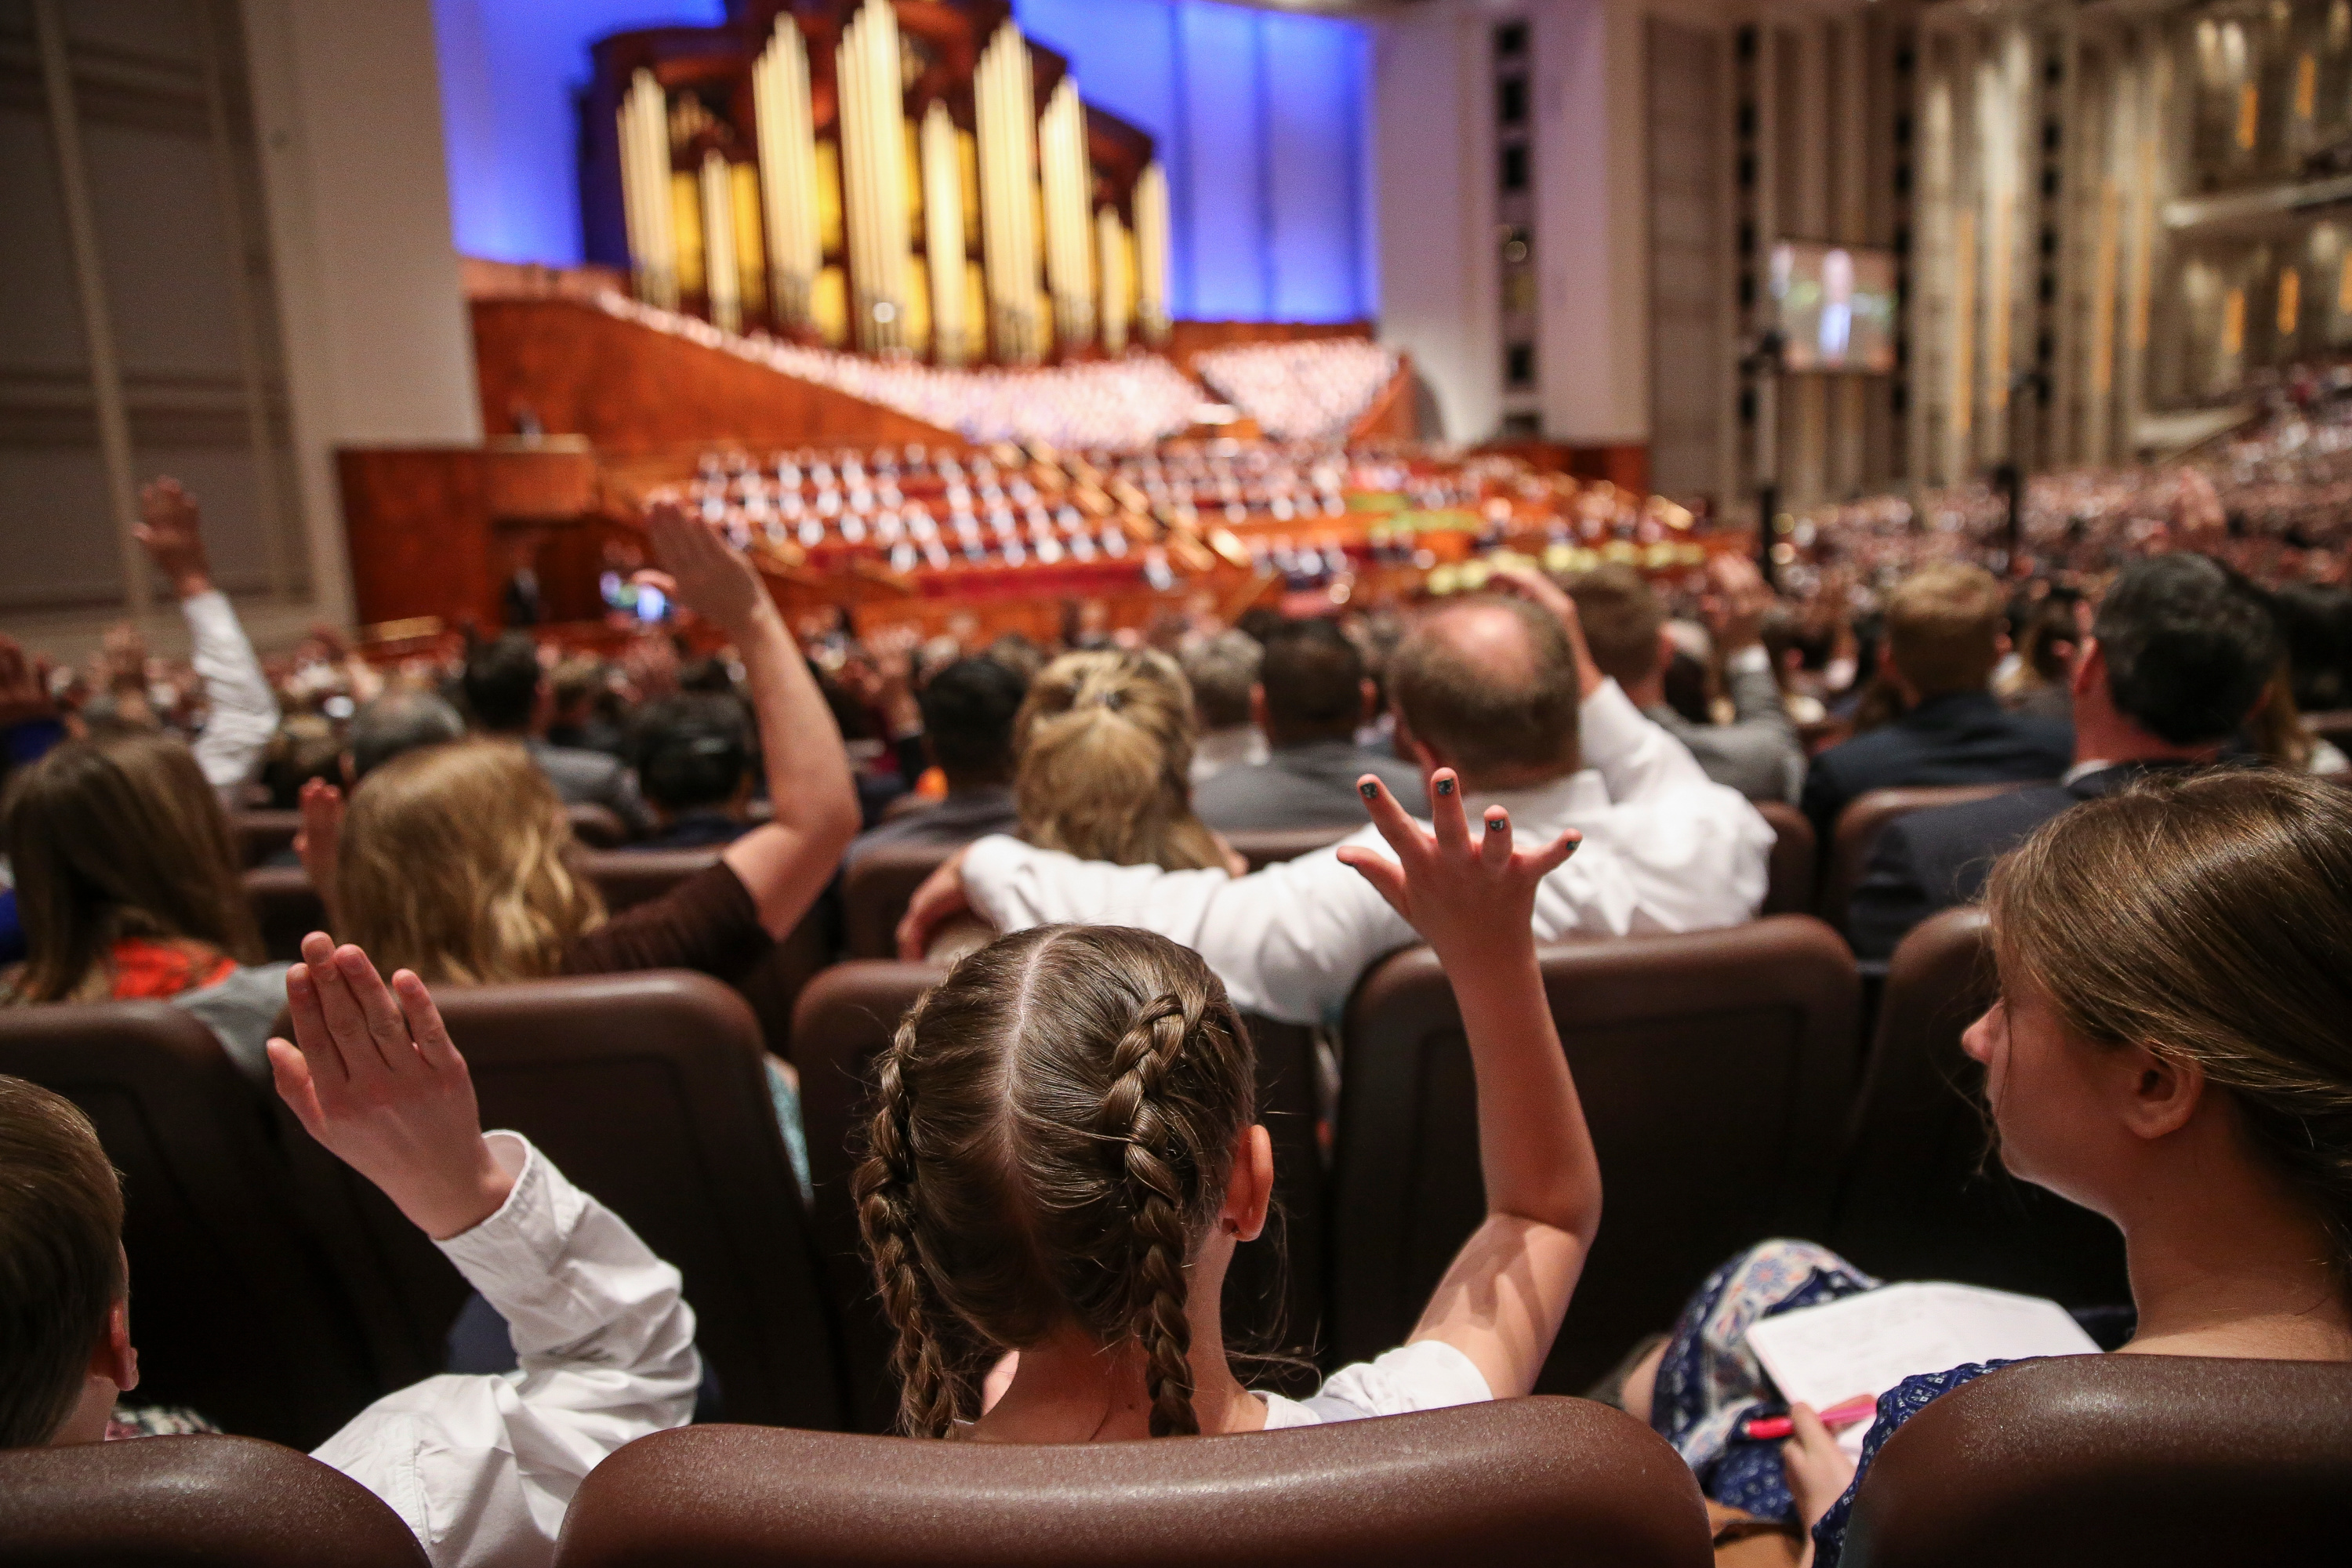 Young conferencegoers raise their hands to sustain church leadership during the Saturday afternoon session of the 188th Annual General Conference of the LDS Church at the Conference Center in Salt Lake City on March 31, 2018.